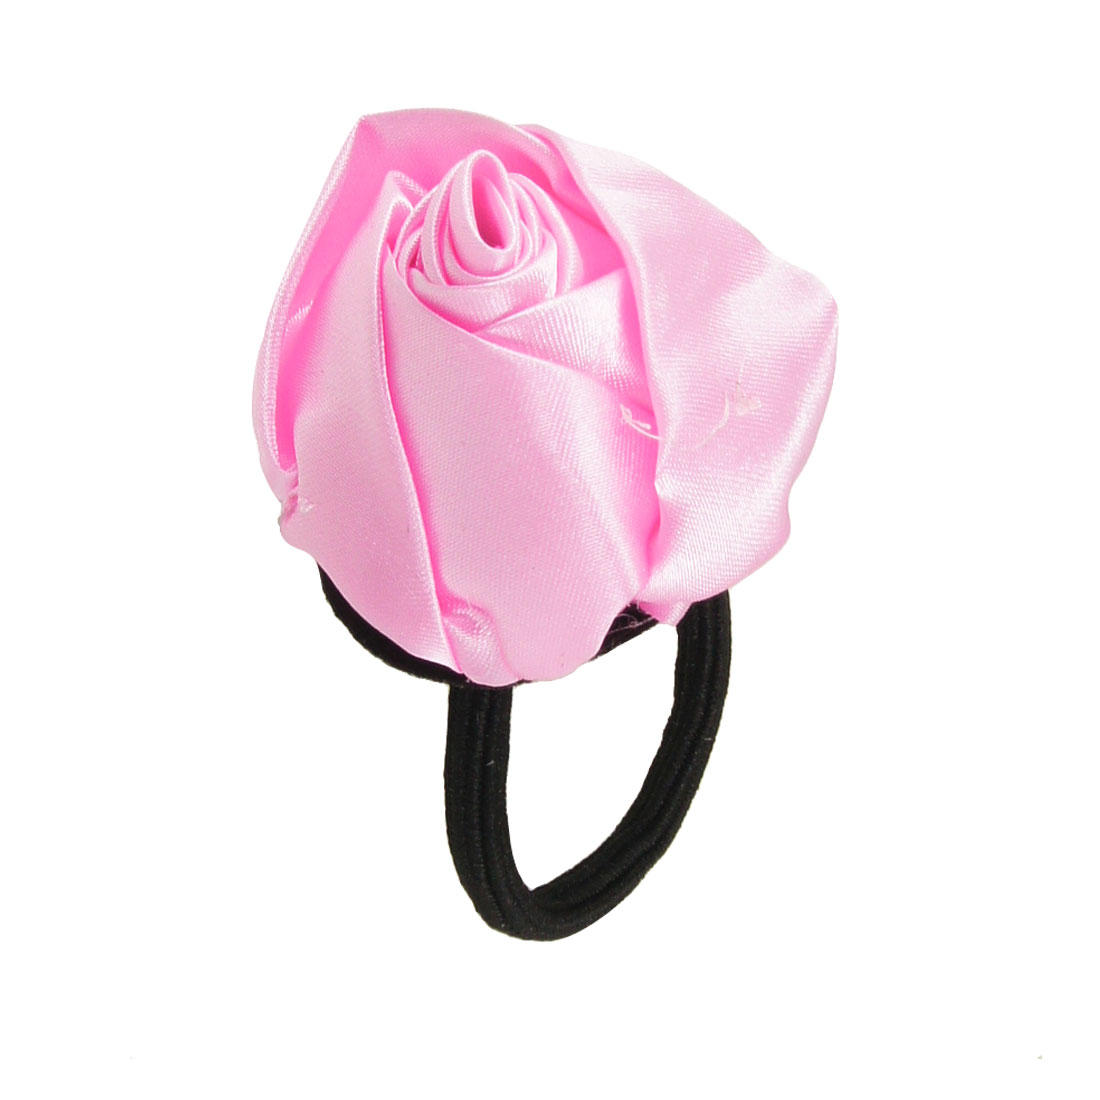 Pink Rose Accent Elastic Band Hair Tie Ponytail Holder for Women